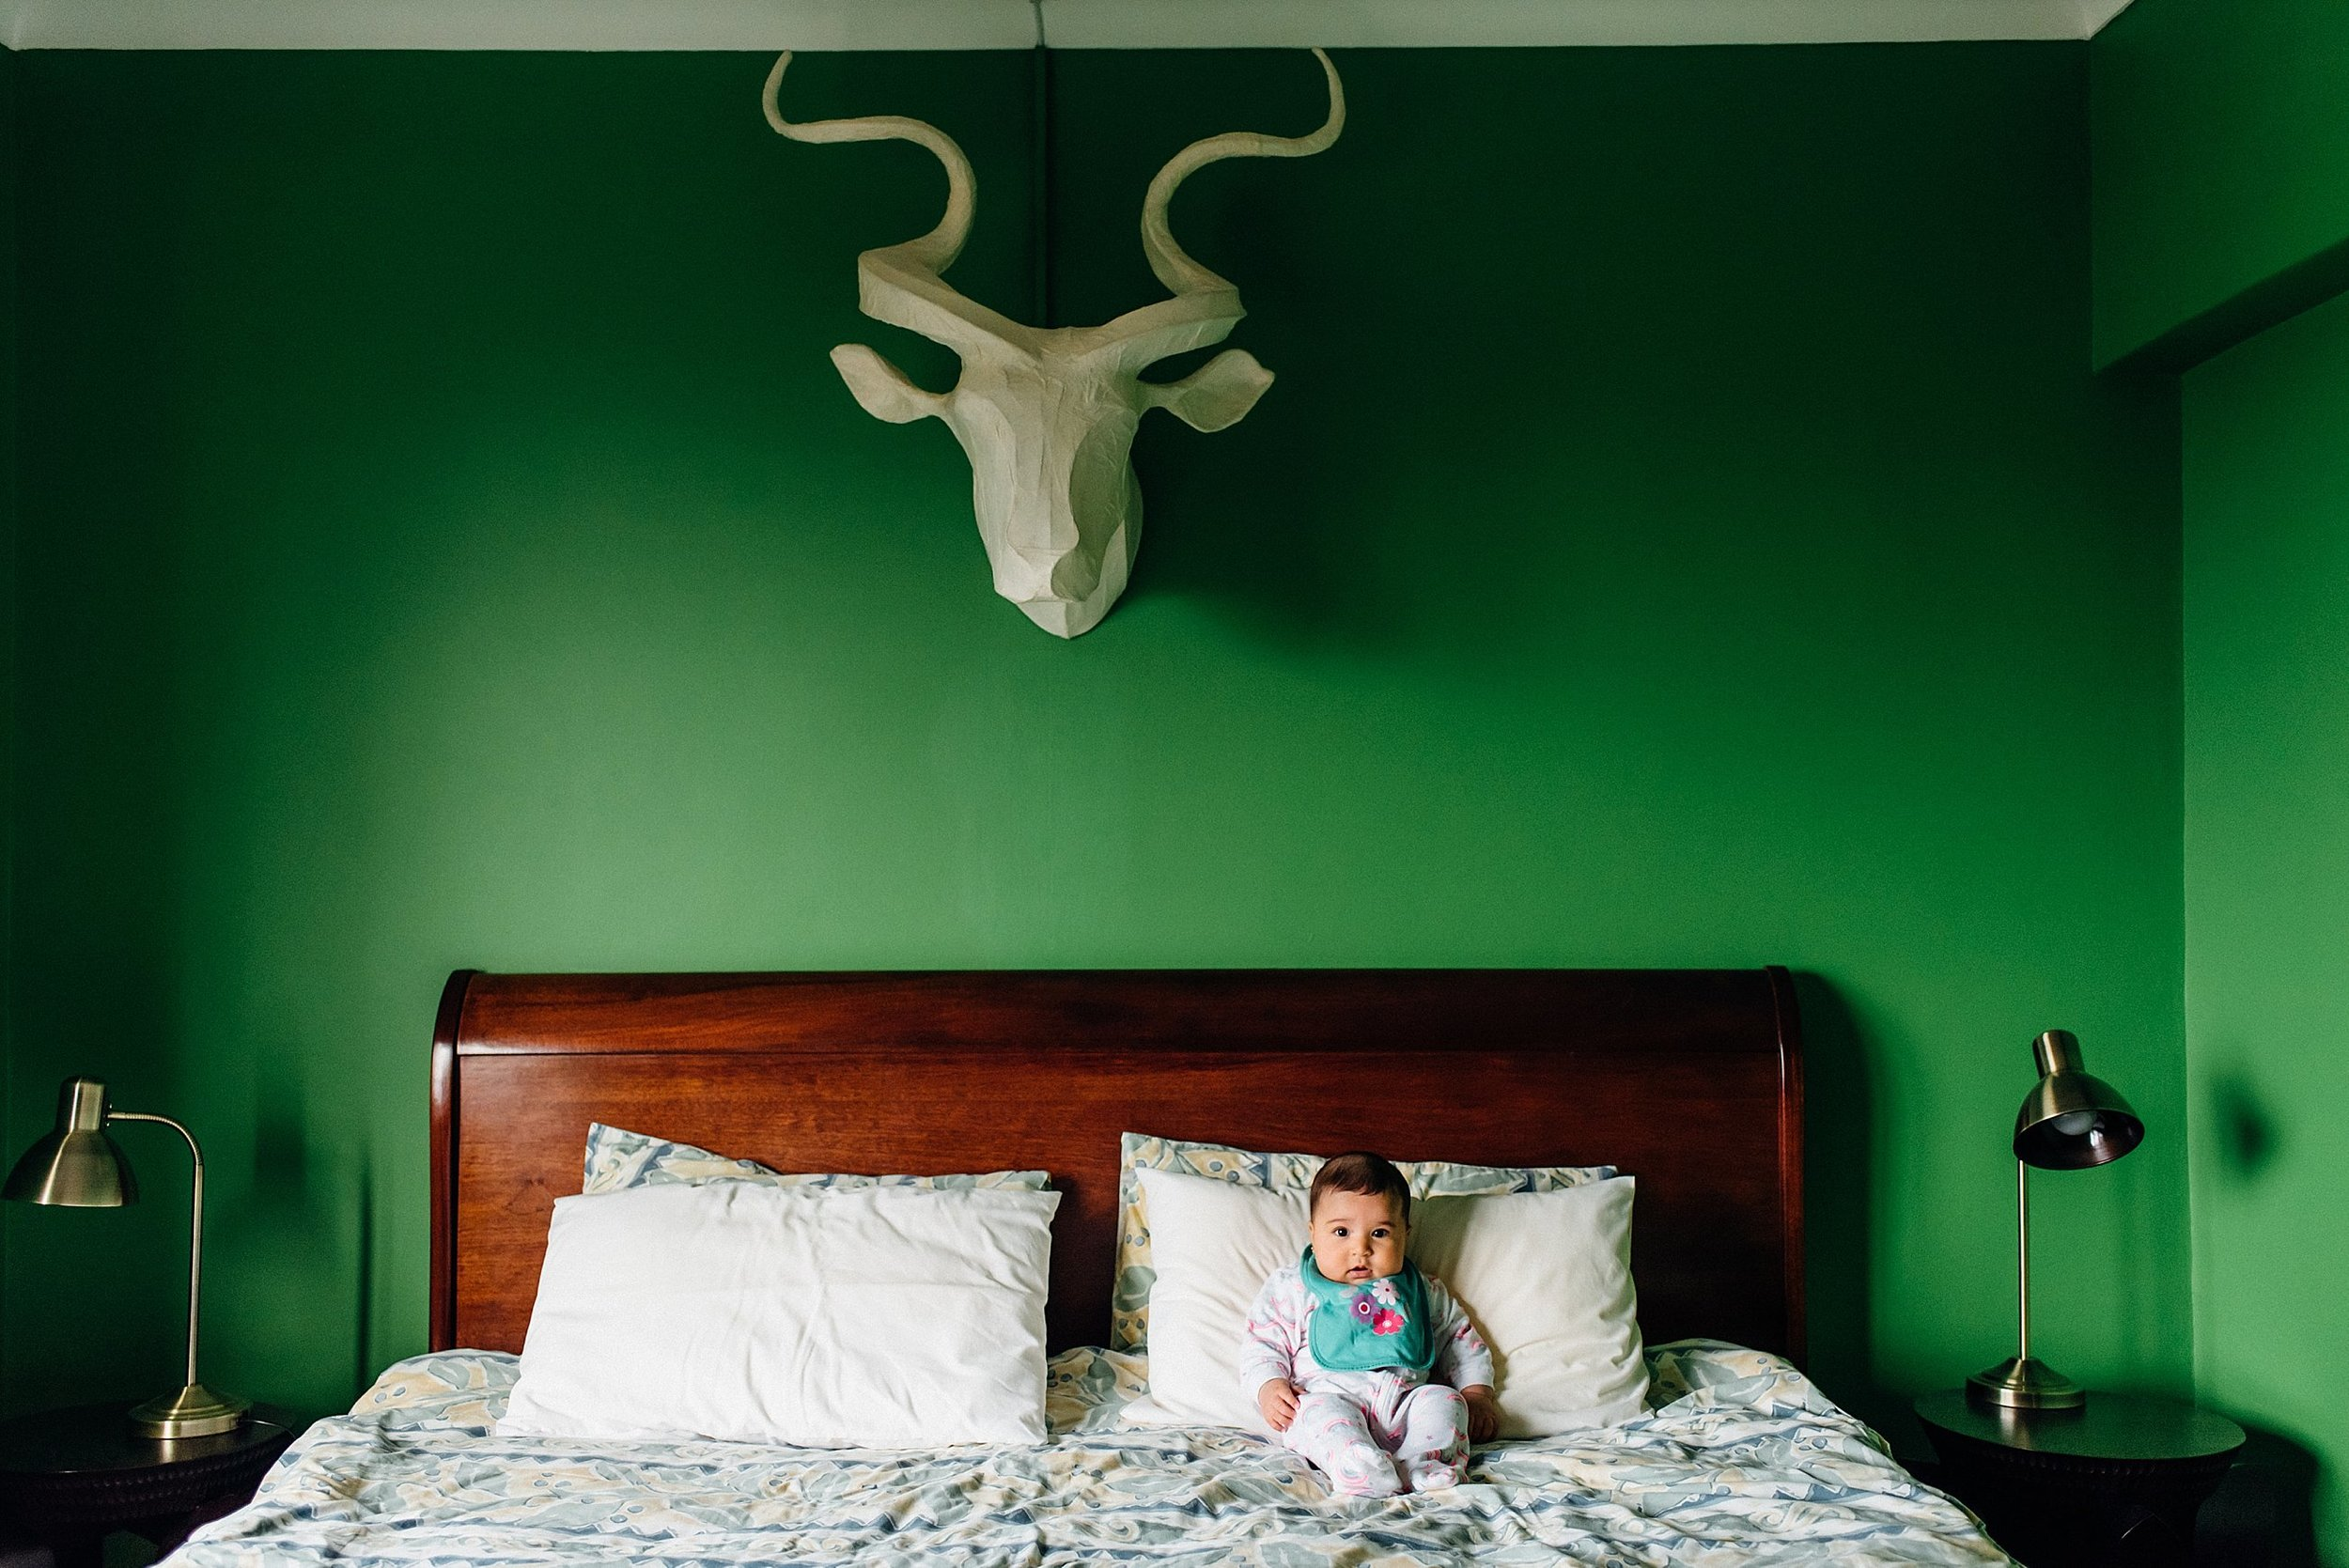 Hayat wasn't too keen on the antlers, but she liked the King sized-bed!